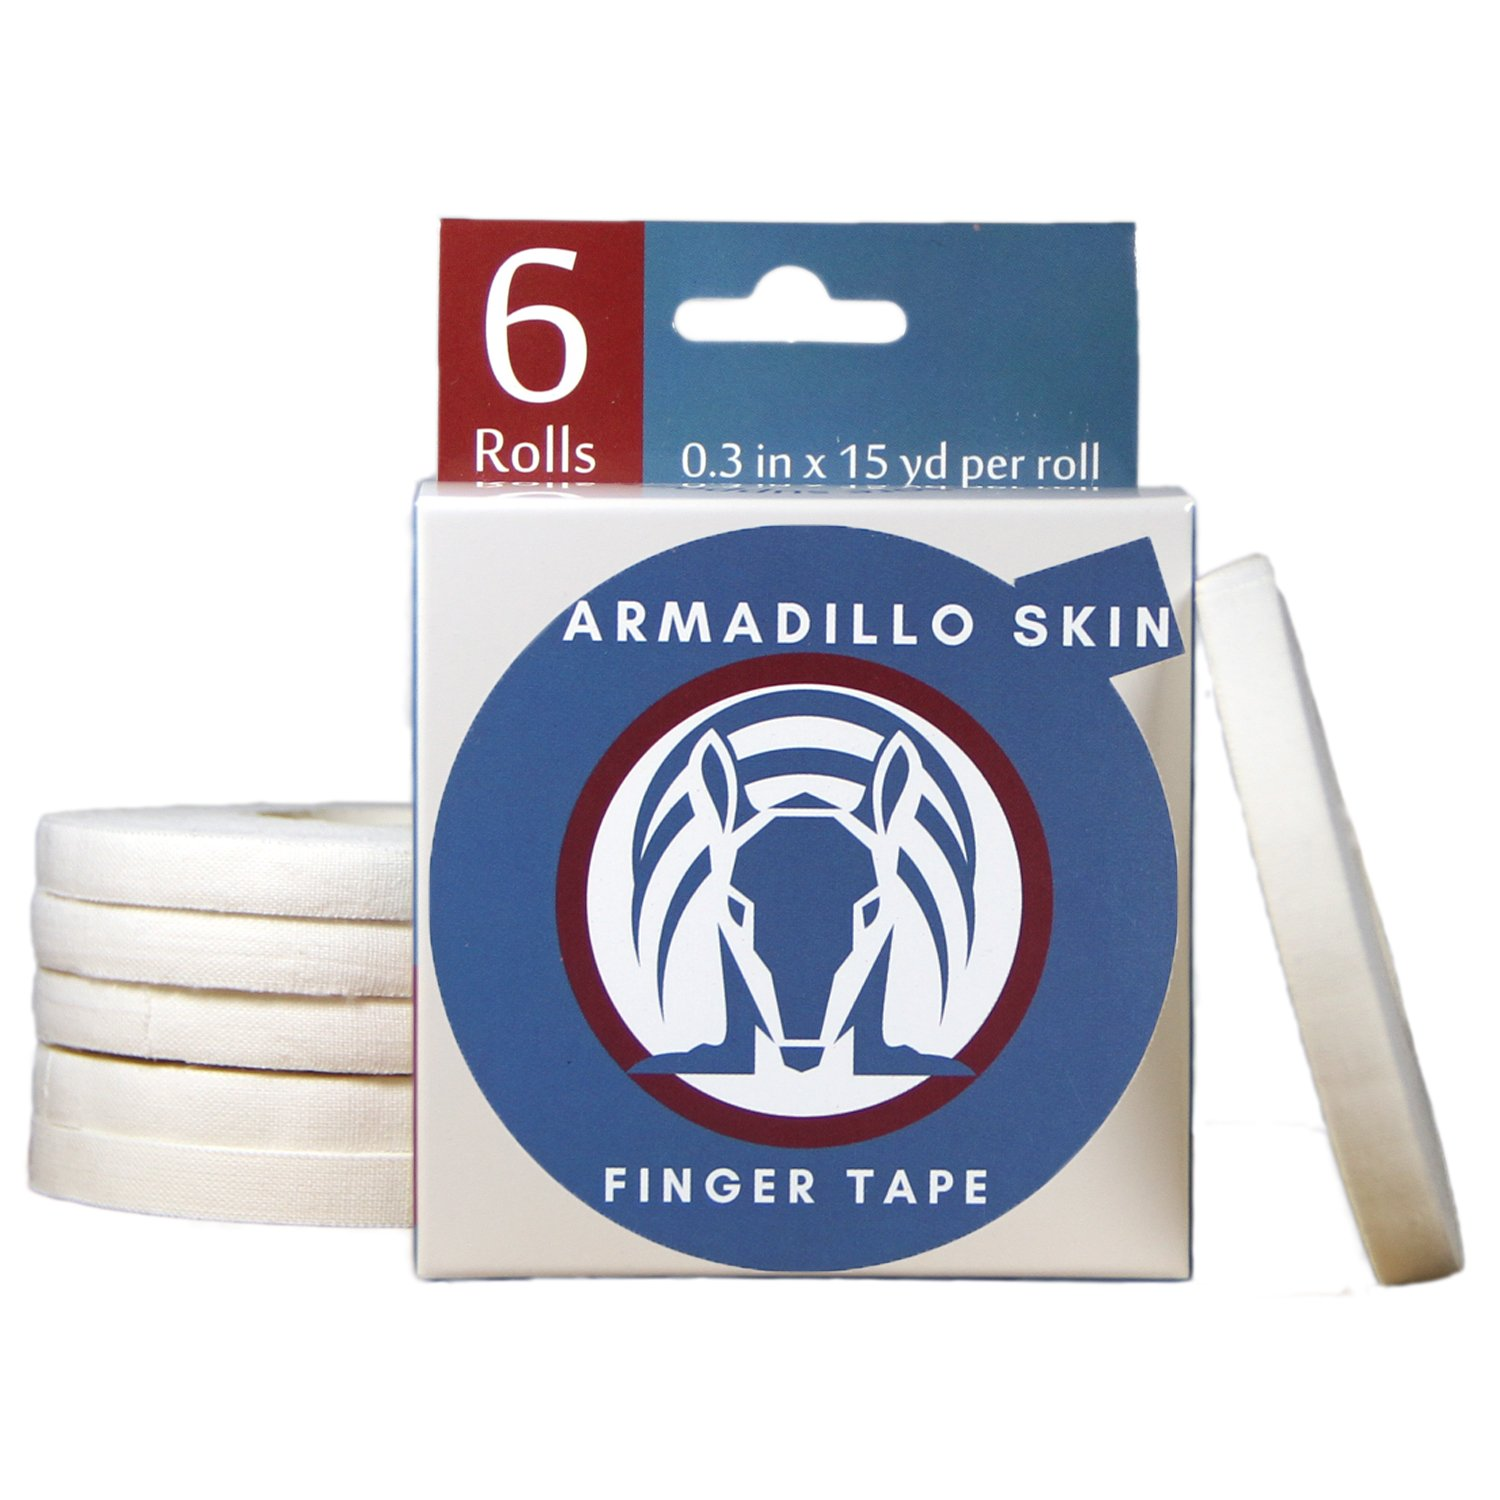 Armadillo Skin Finger Tape, Strong Cotton Athletic Tape for Grappling, Brazilian Jiu Jitsu (BJJ), Judo, Rock Climbing and MMA 0.3 in x 15 yds, 6 Rolls per Pack